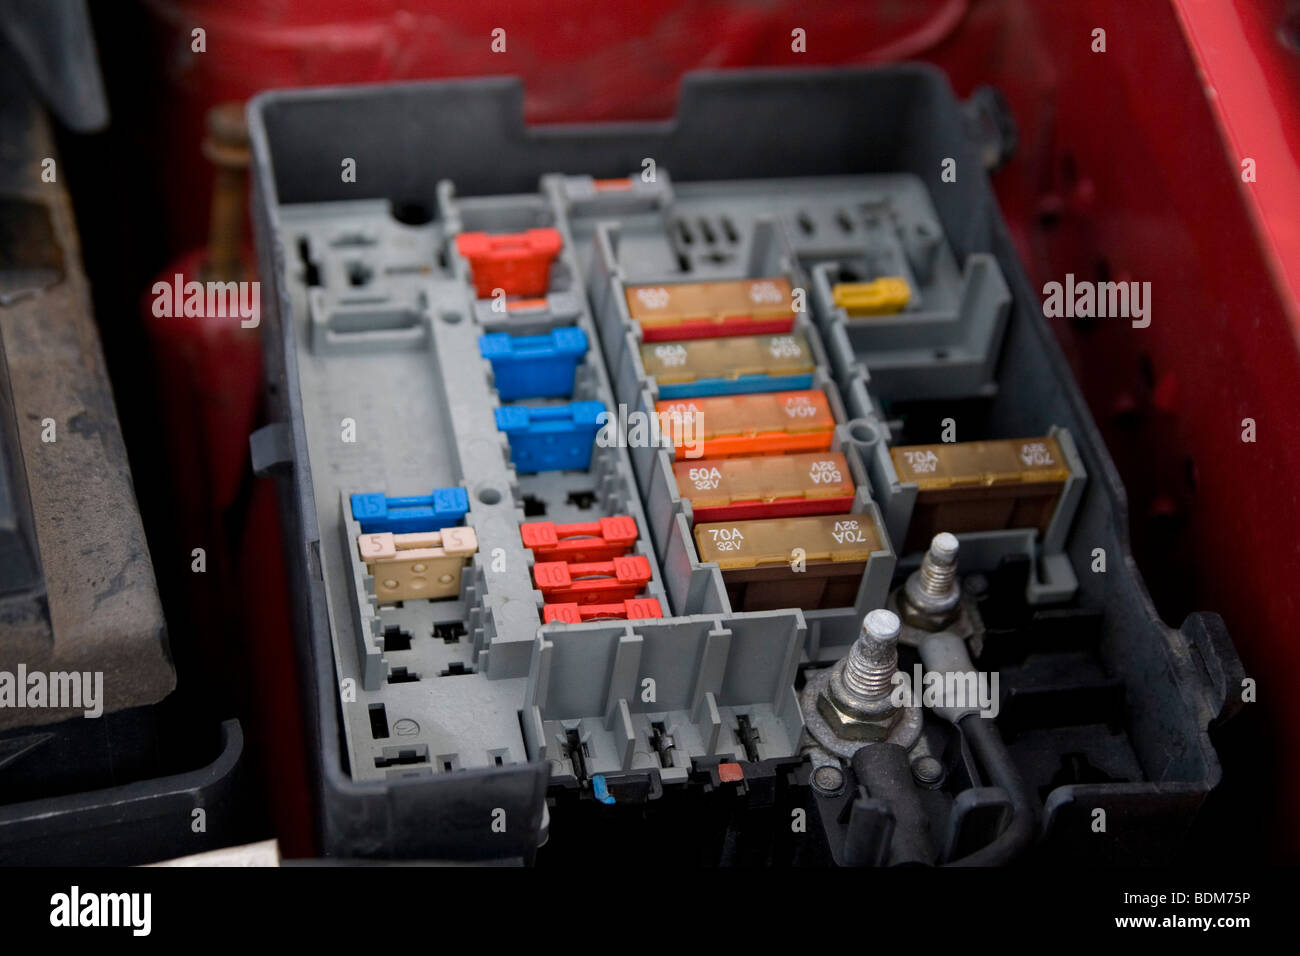 Citroen Berlingo Fuse Box